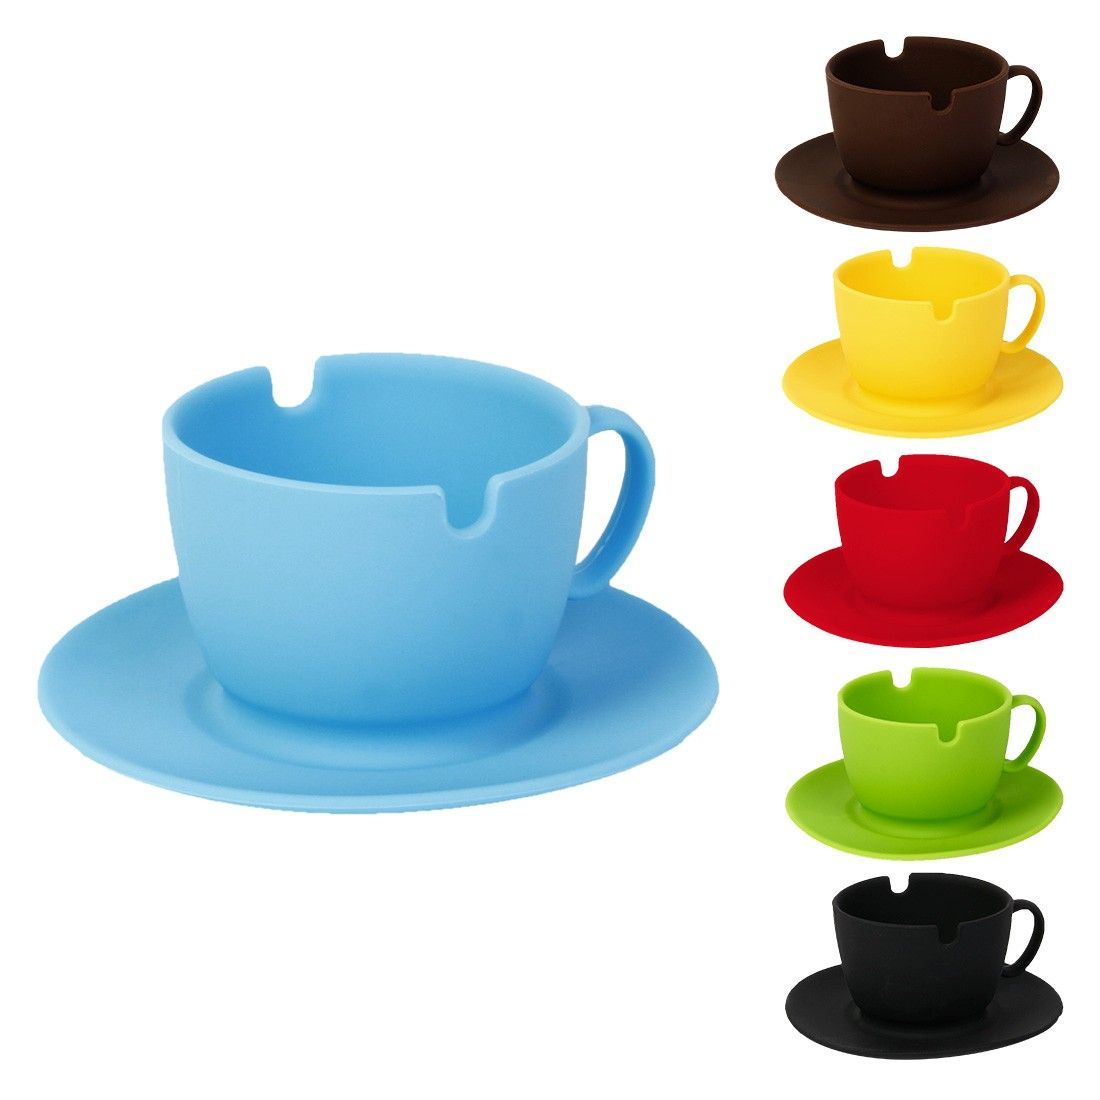 cendrier silicone tasse a caf cendrier original pas. Black Bedroom Furniture Sets. Home Design Ideas